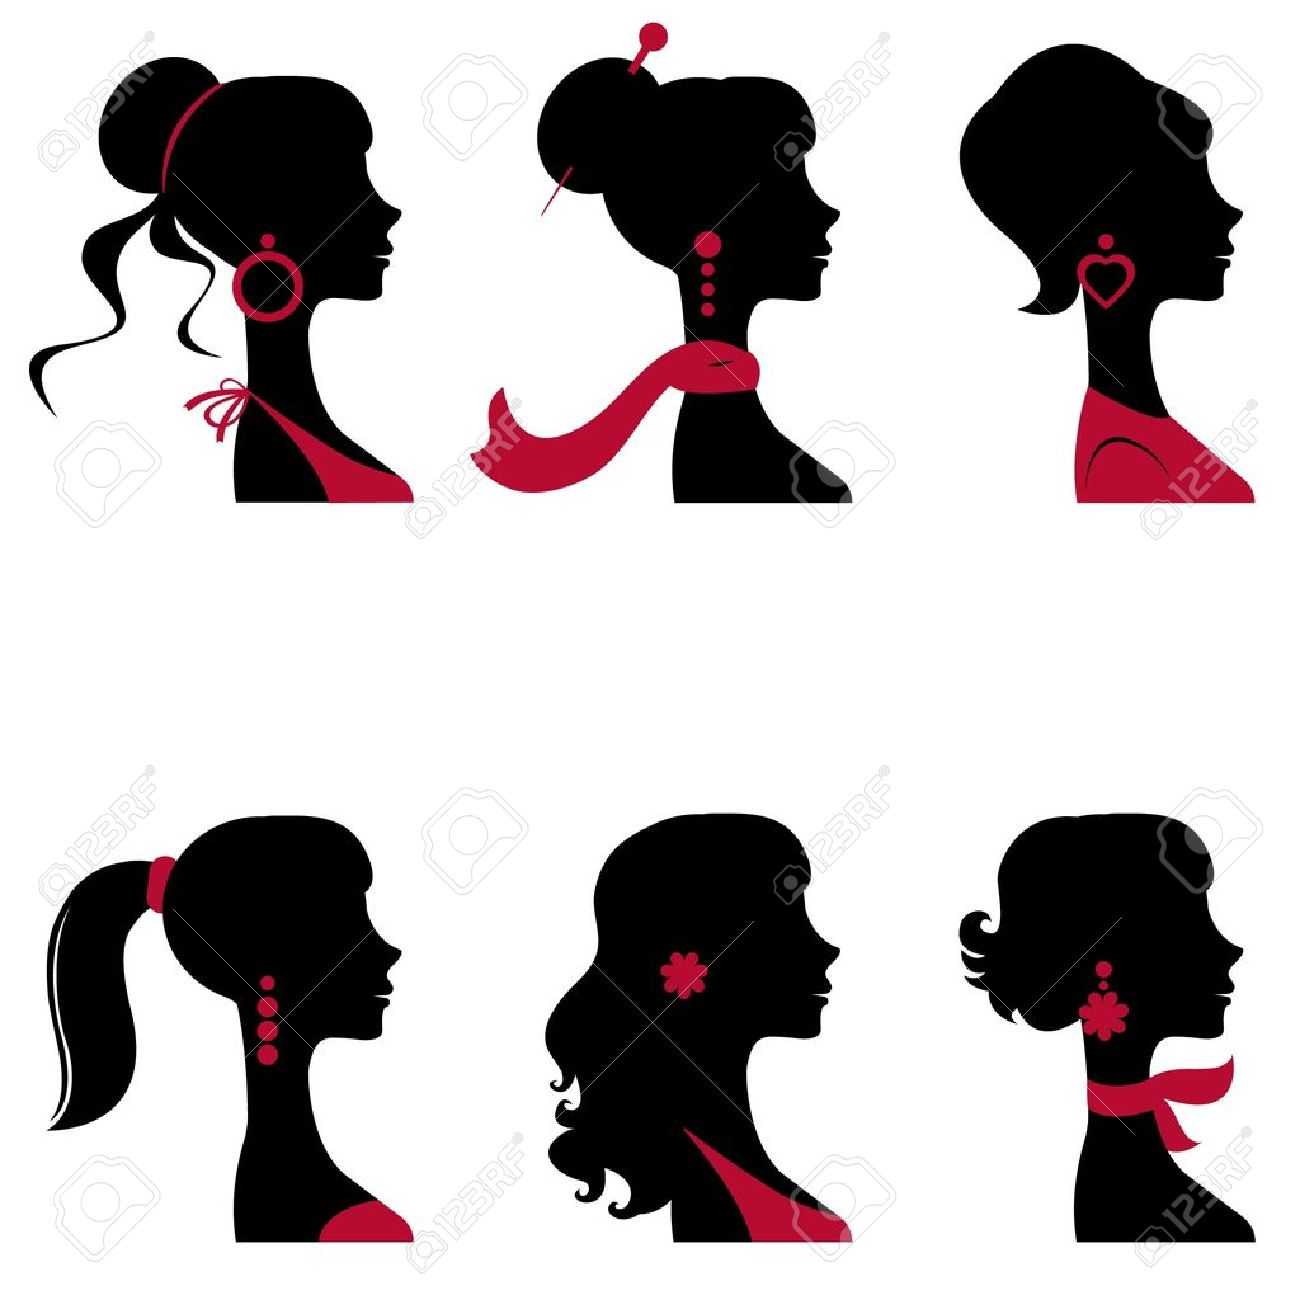 Lady wearing jewelry clipart banner library library Female santa wearing jewelry clipart - Clip Art Library banner library library